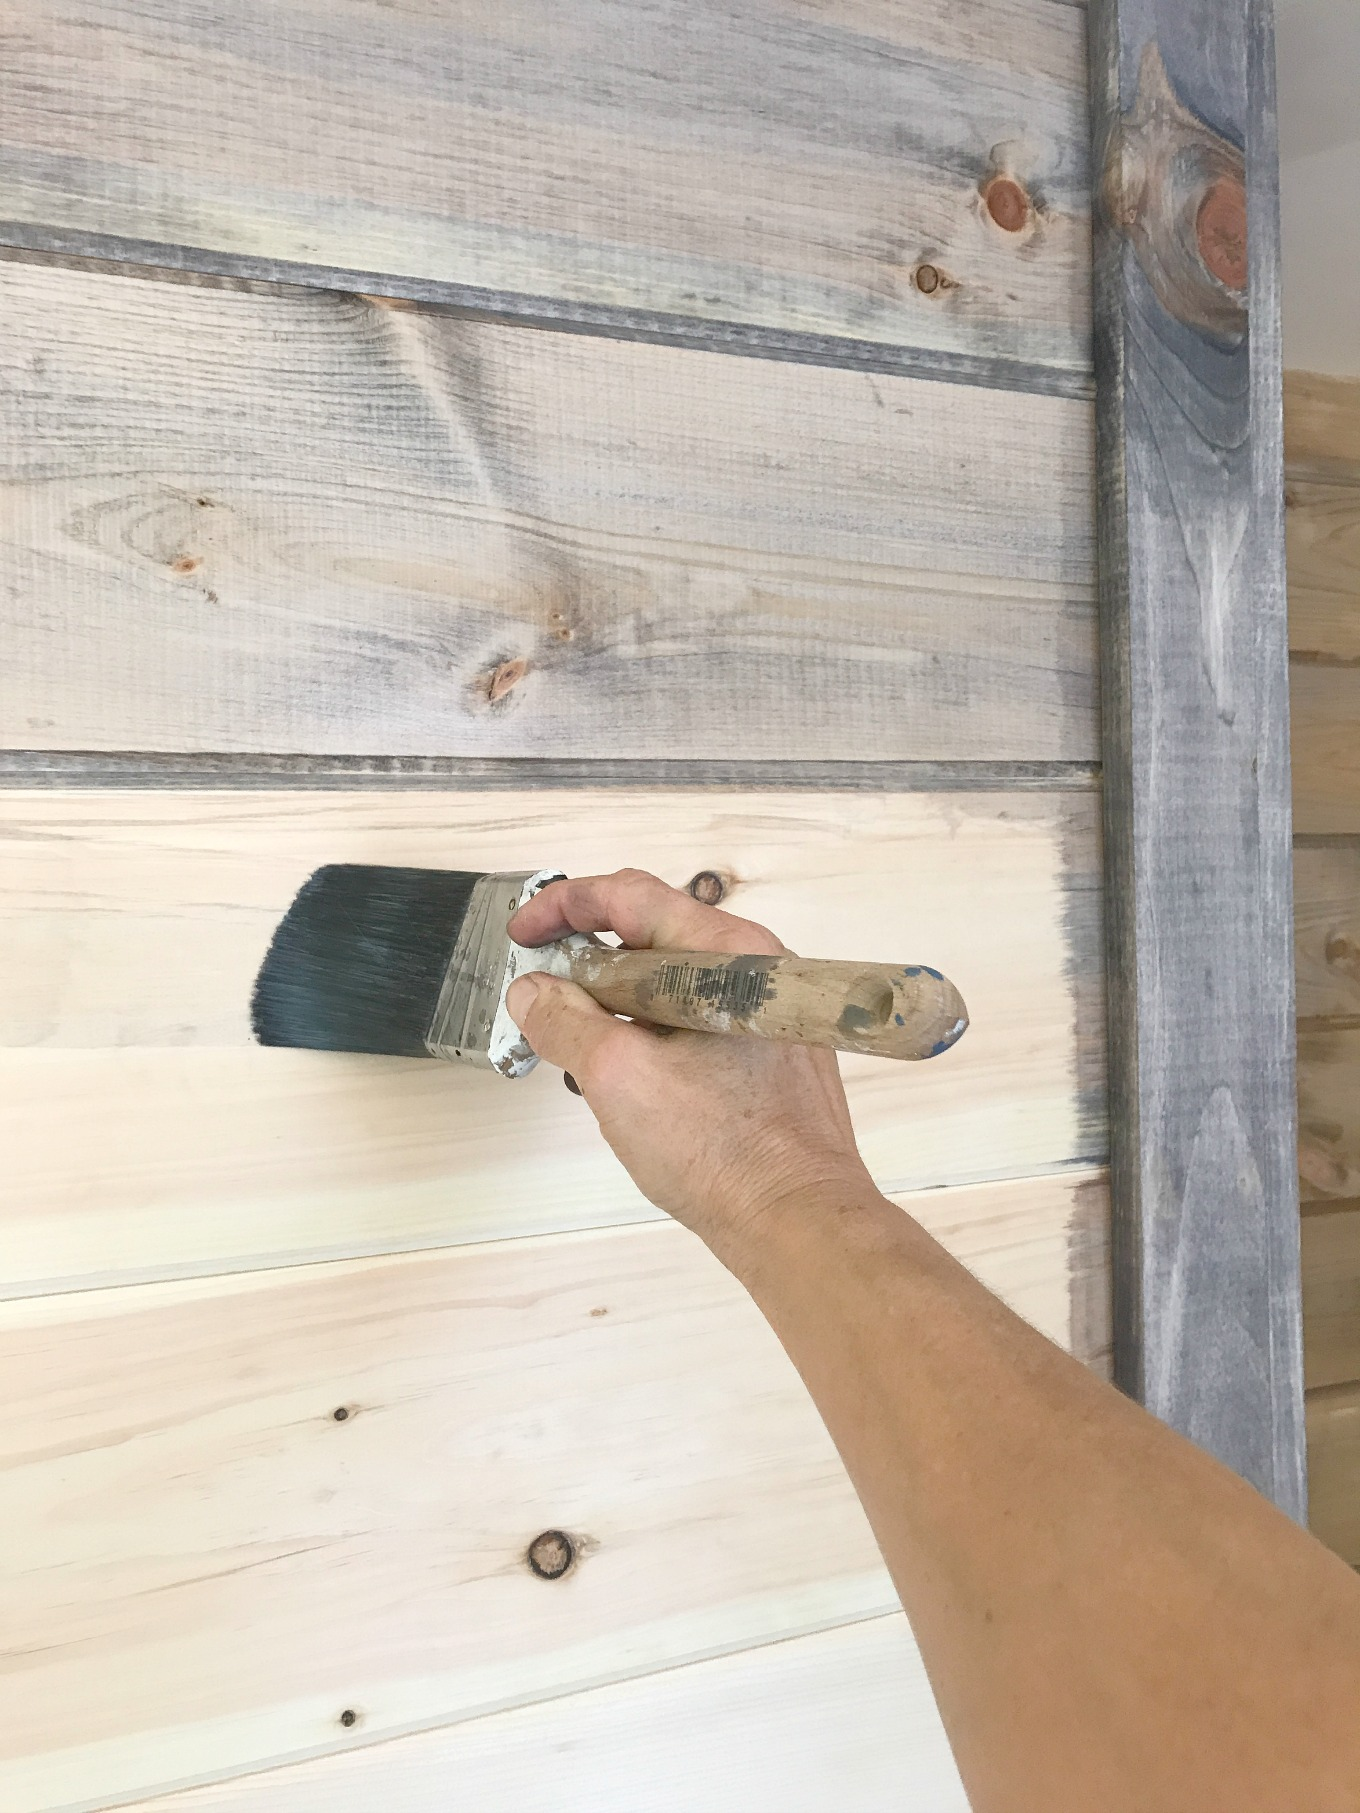 The Picture Below Is Shiplap In Simple Terms It Has A Cut Out Groove For Next Board To Rest Under Or Over Technical And By Definition